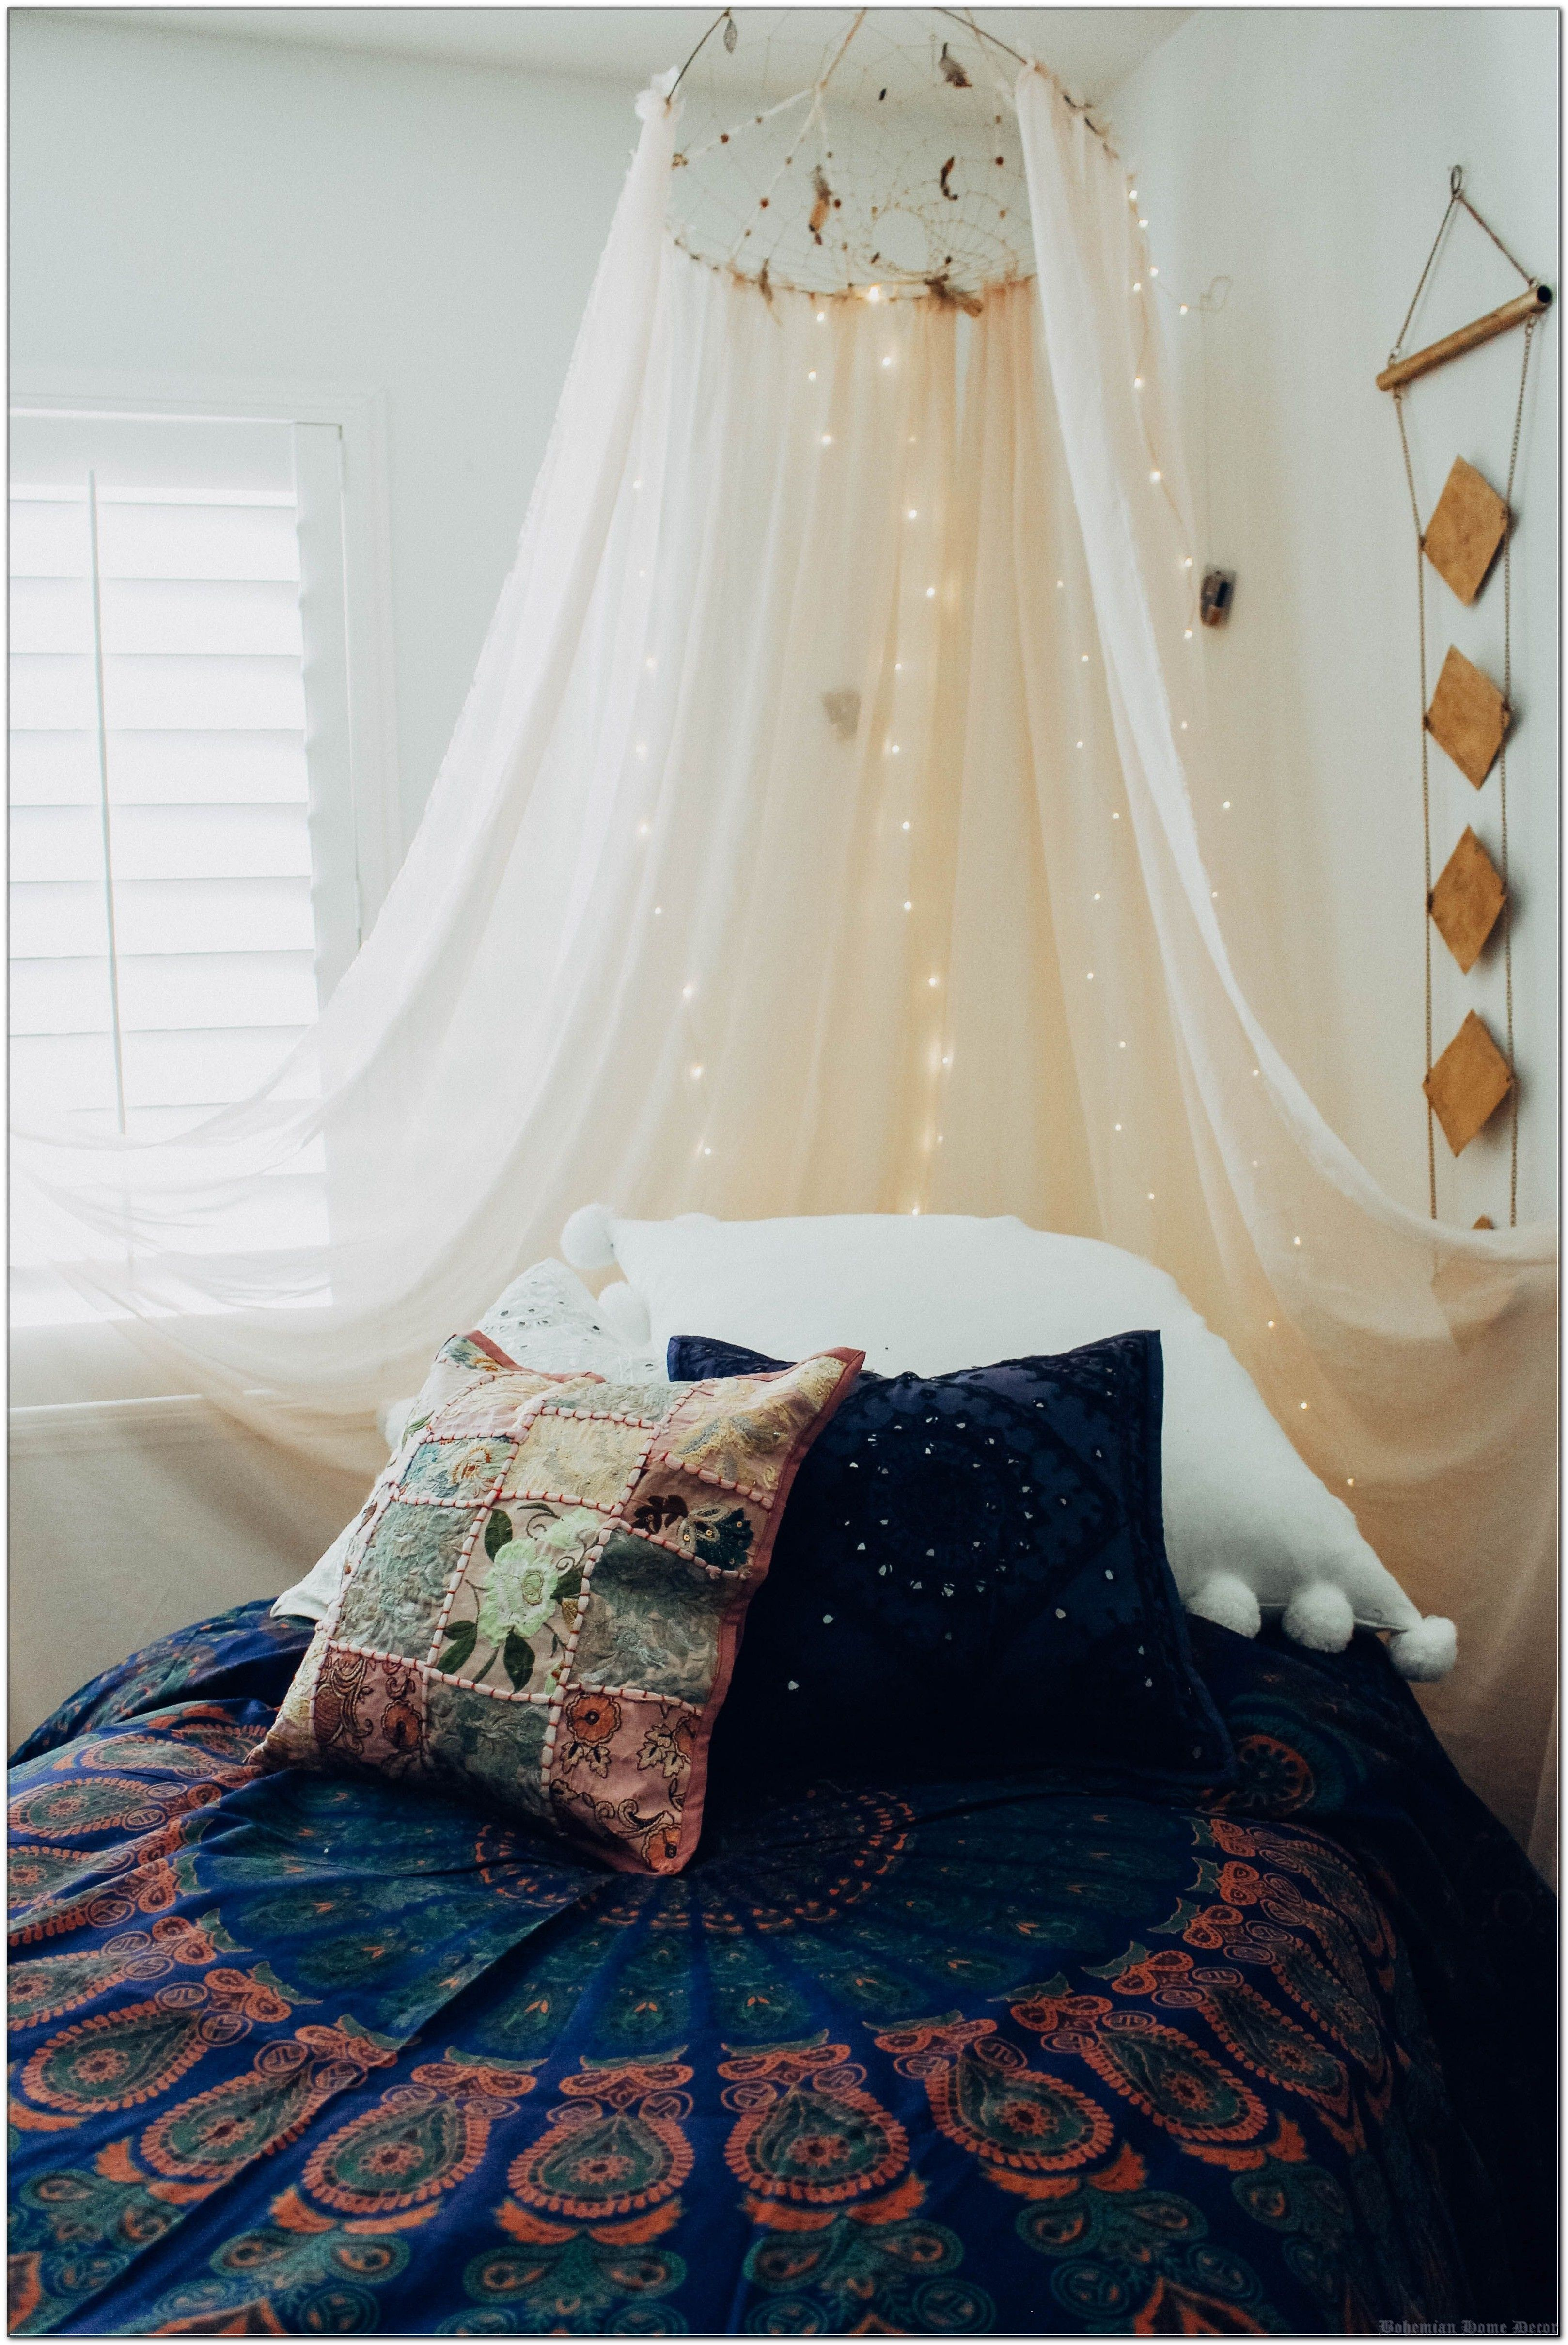 Where Can You Find Free Bohemian Home Decor Resources